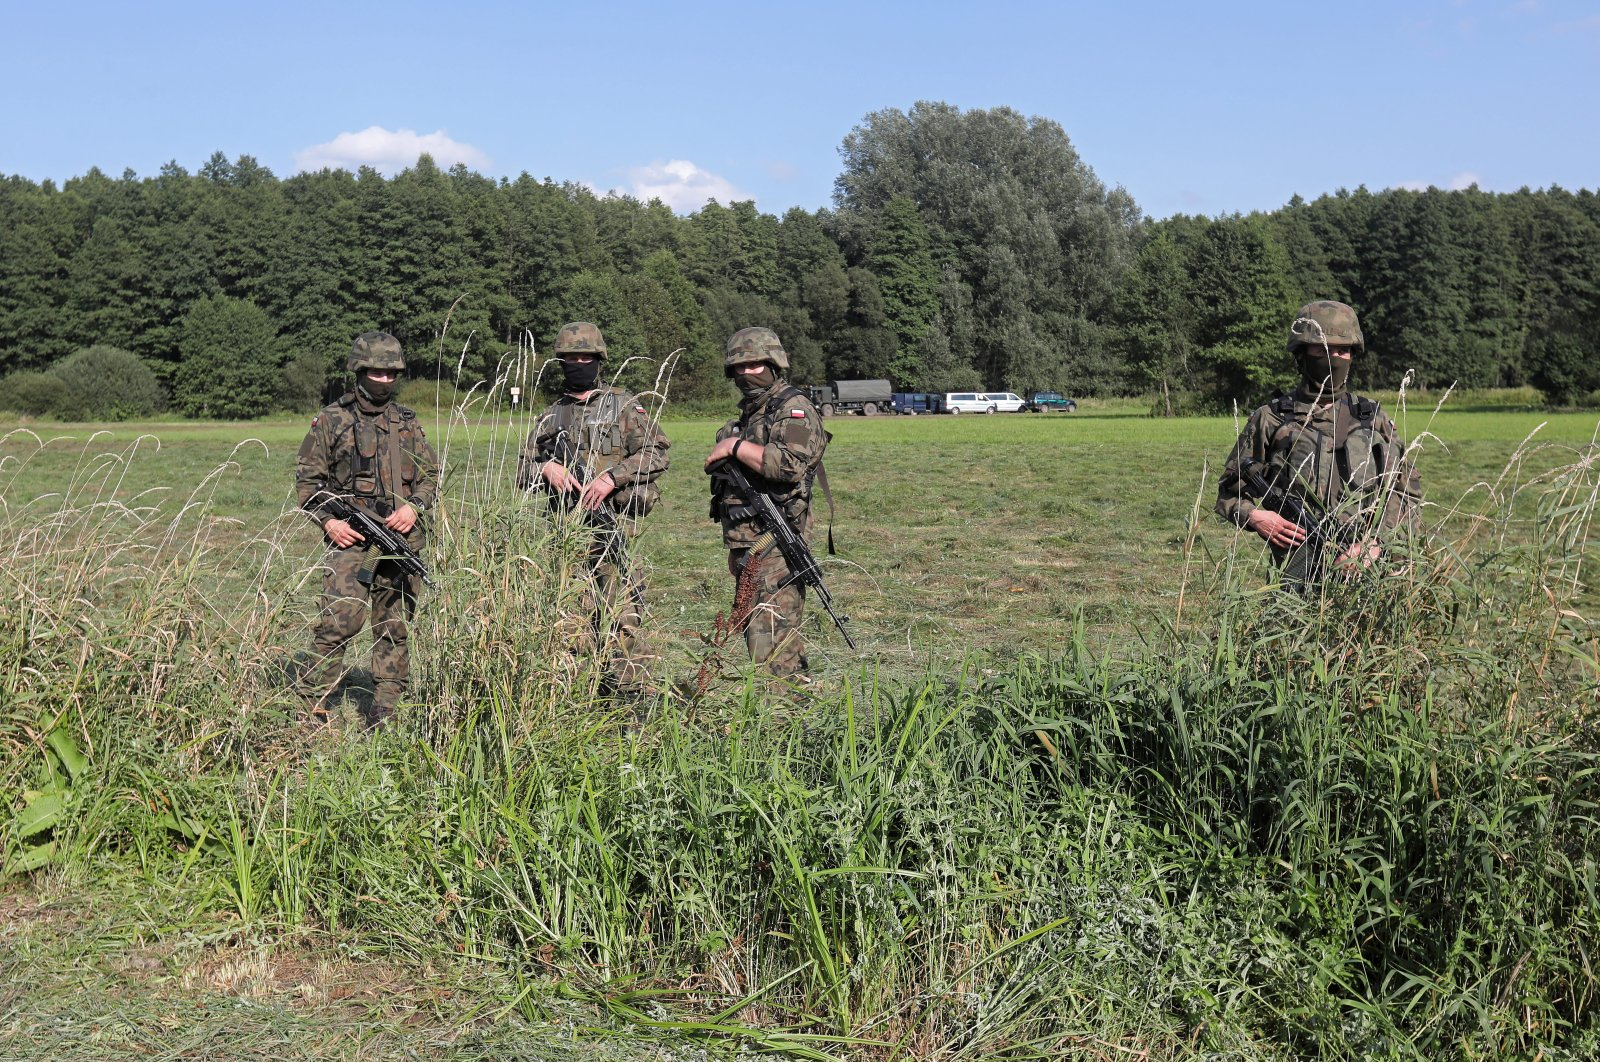 The Border Guard and the army near the town of Usnarz Gorny, northwest Poland, Aug. 22, 2021. (EPA Photo)